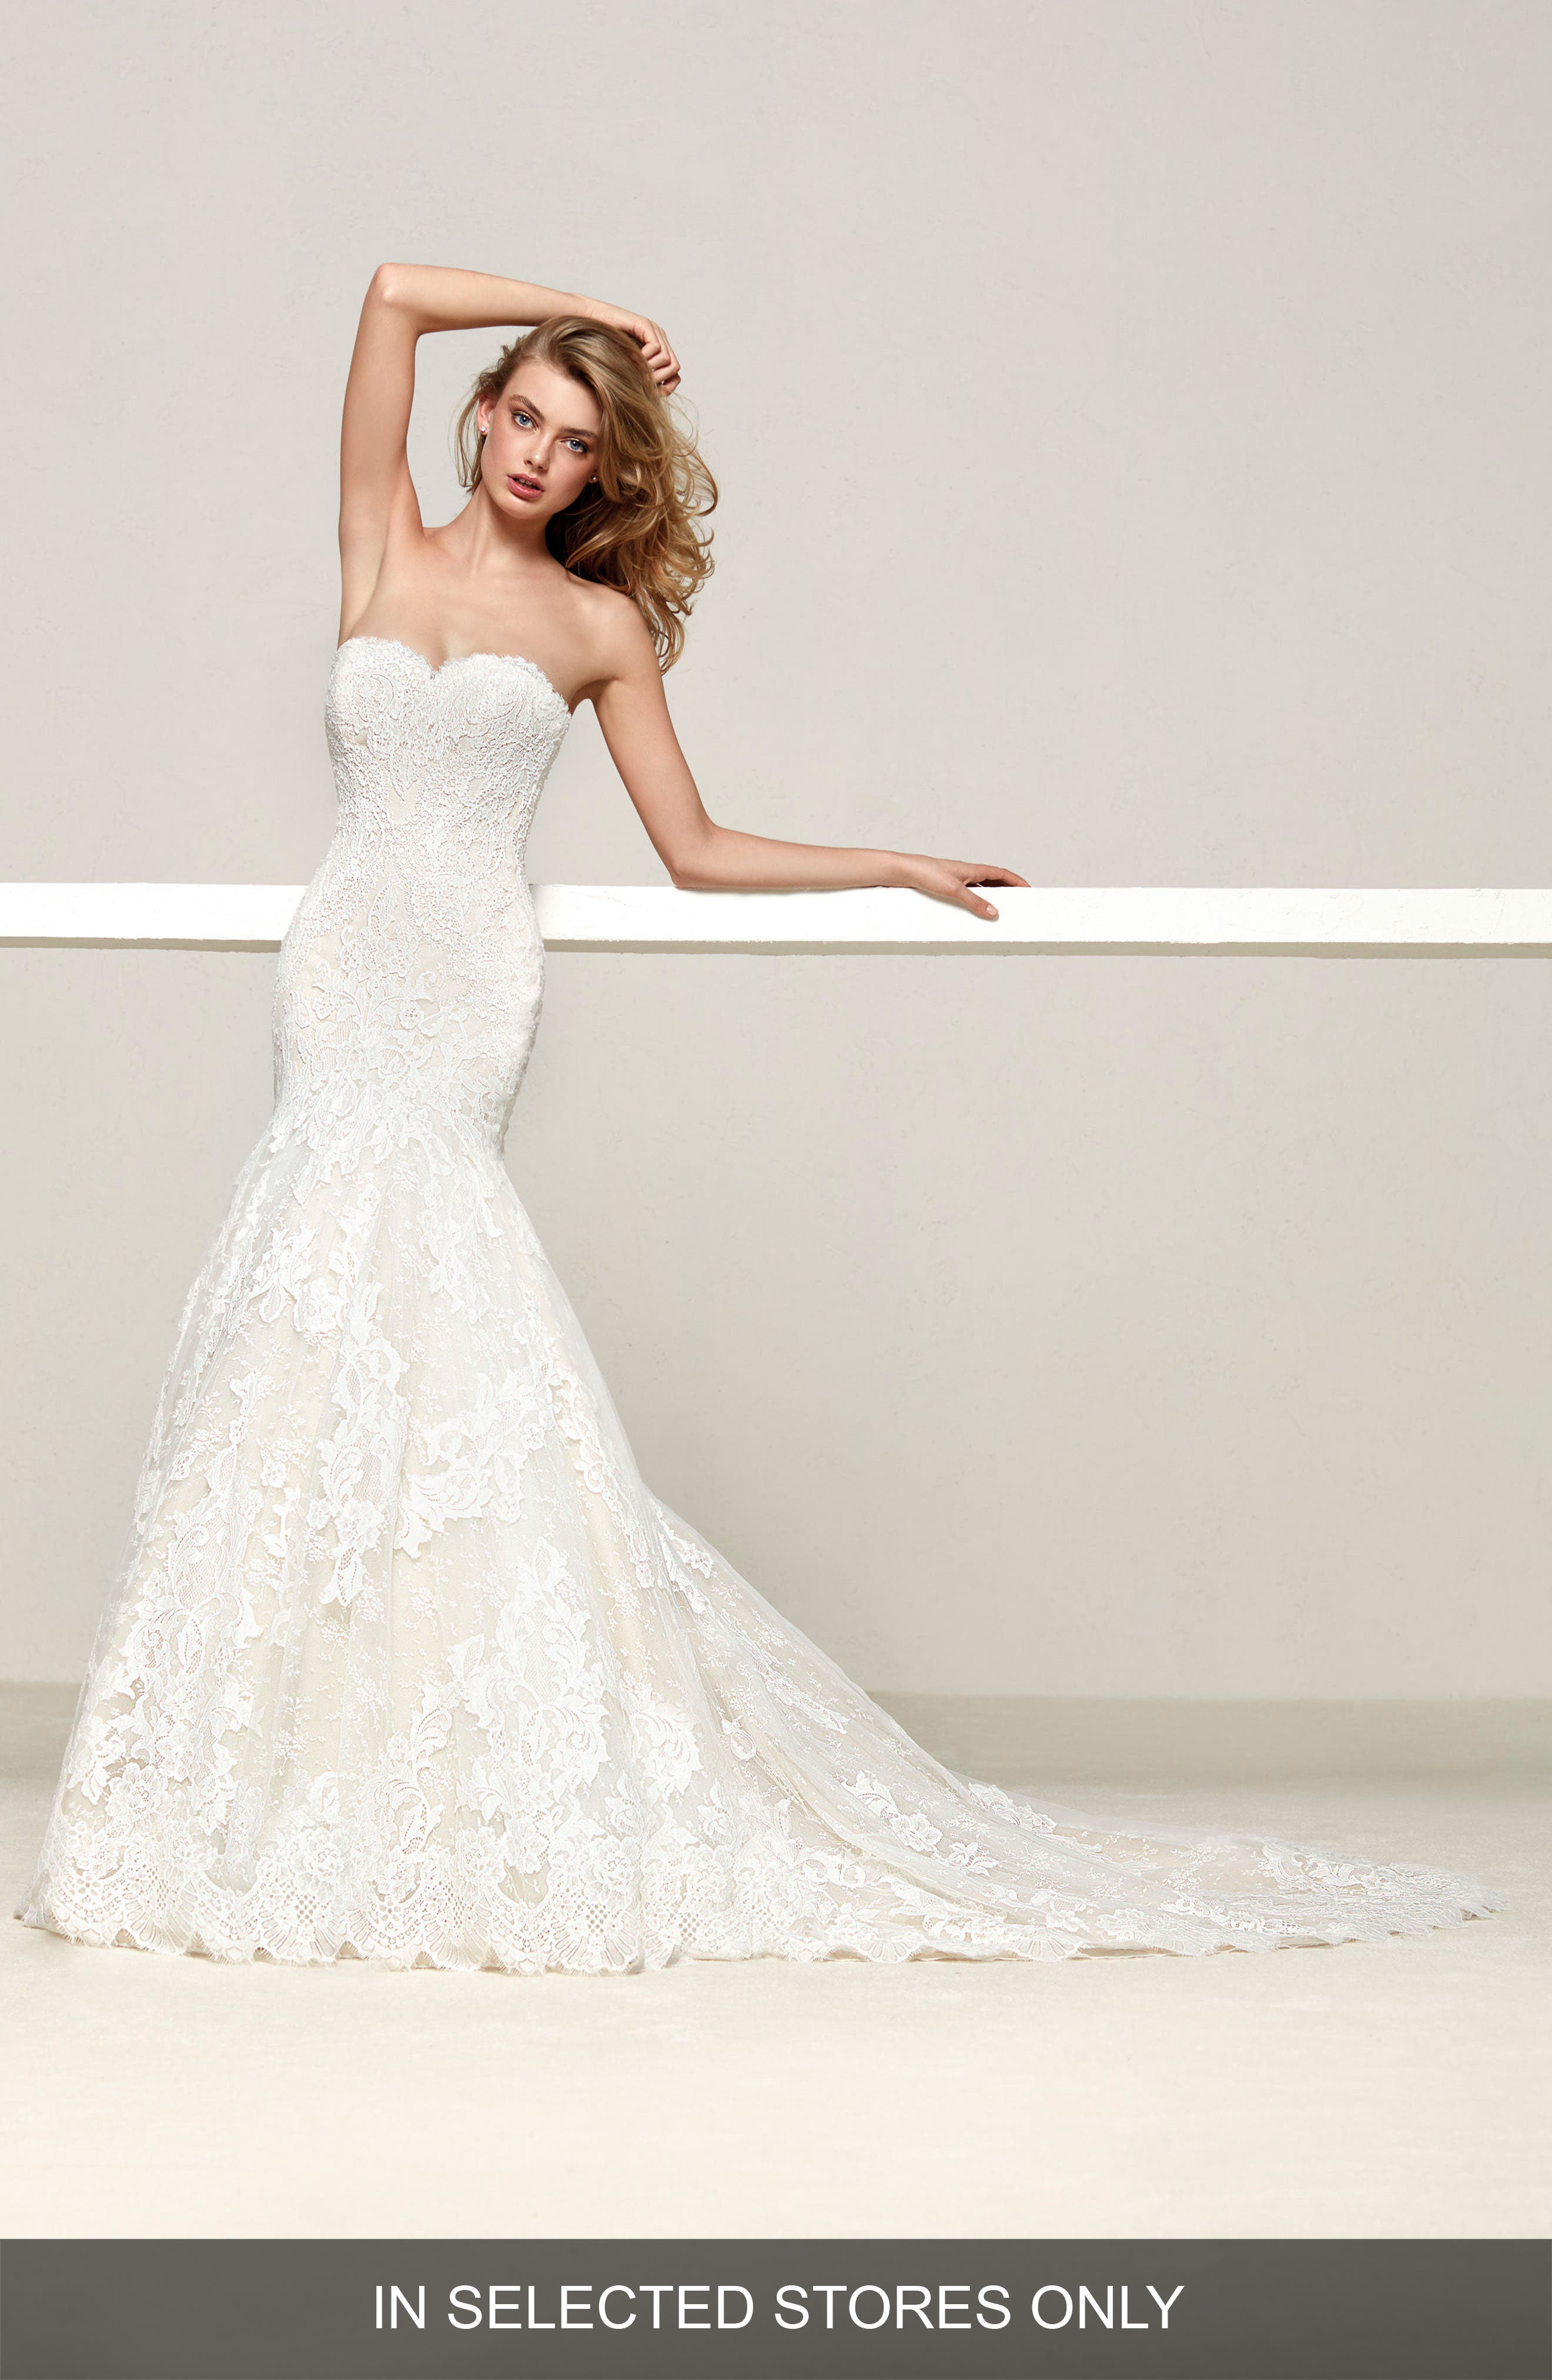 Alternate Image 1 Selected - Pronovias Druida Sweetheart Strapless Lace Mermaid Gown